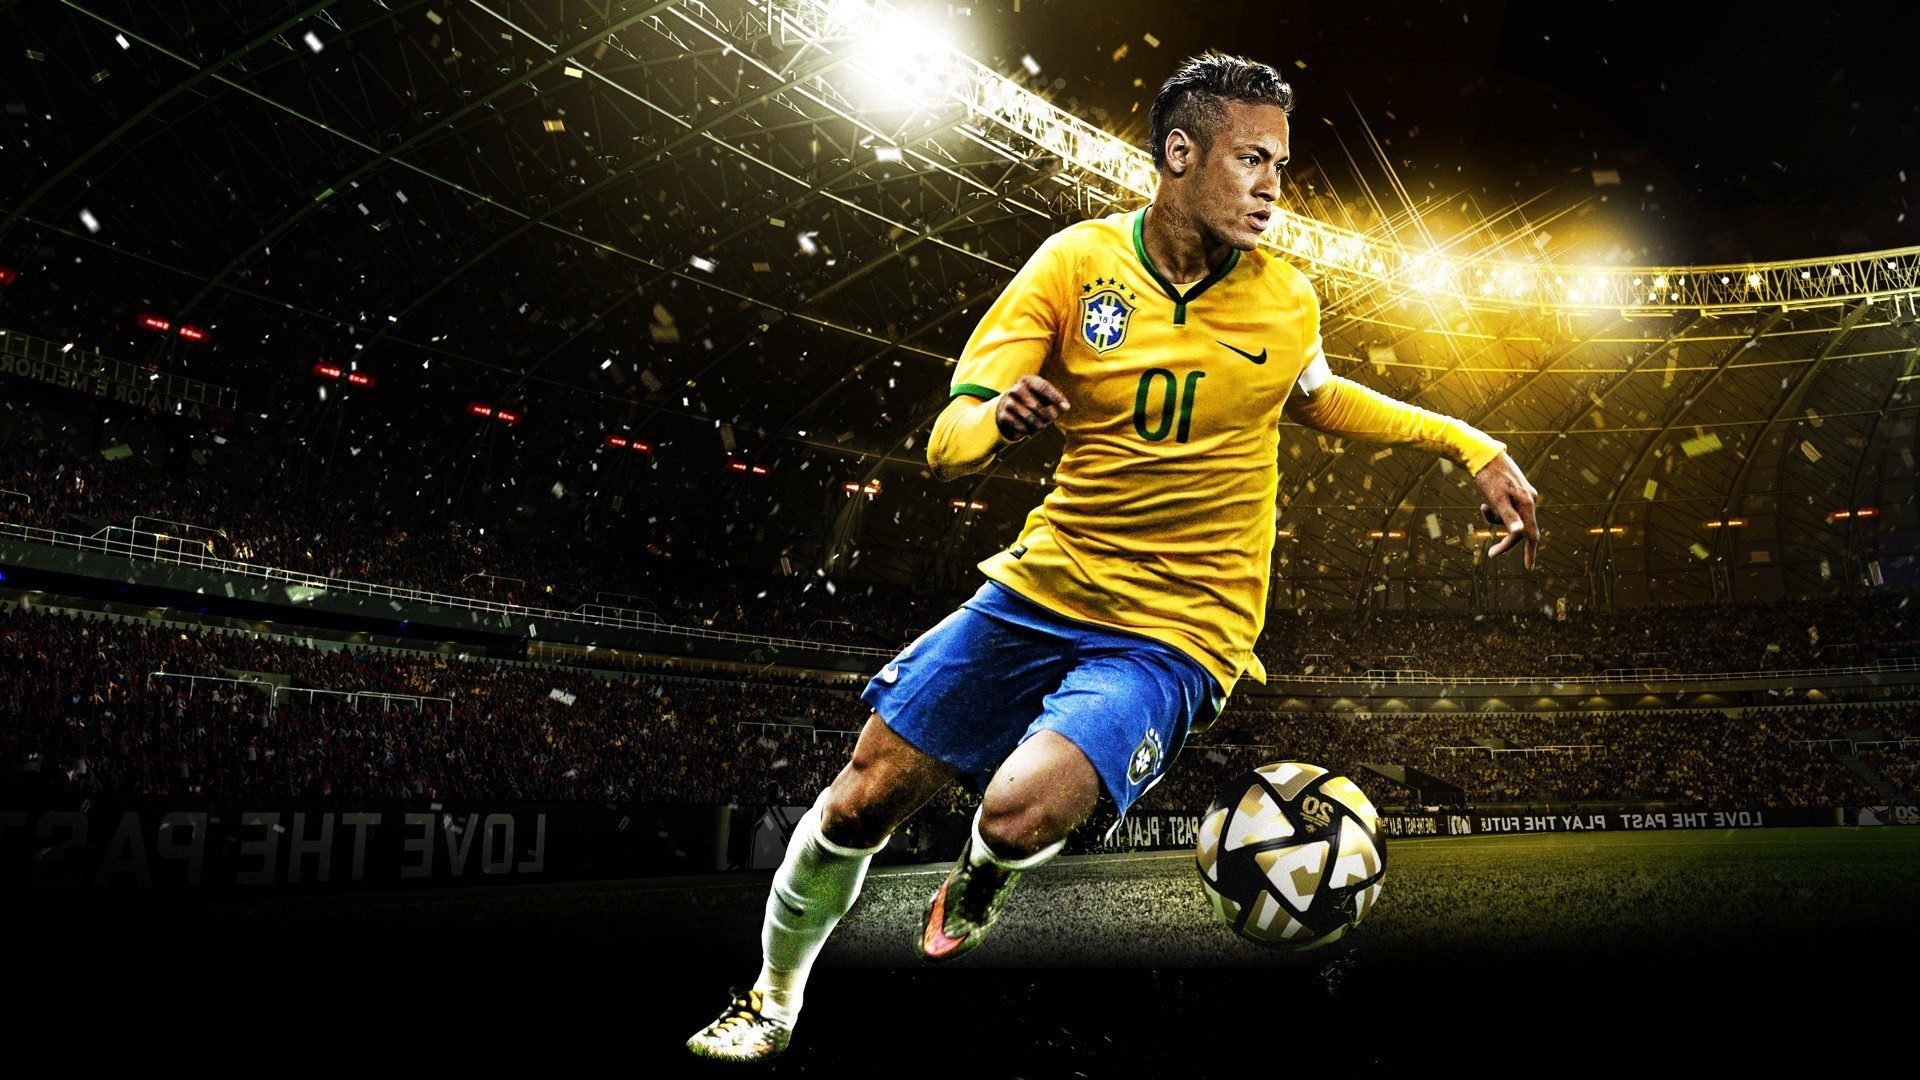 Neymar Wallpaper 2017 HD ·① WallpaperTag